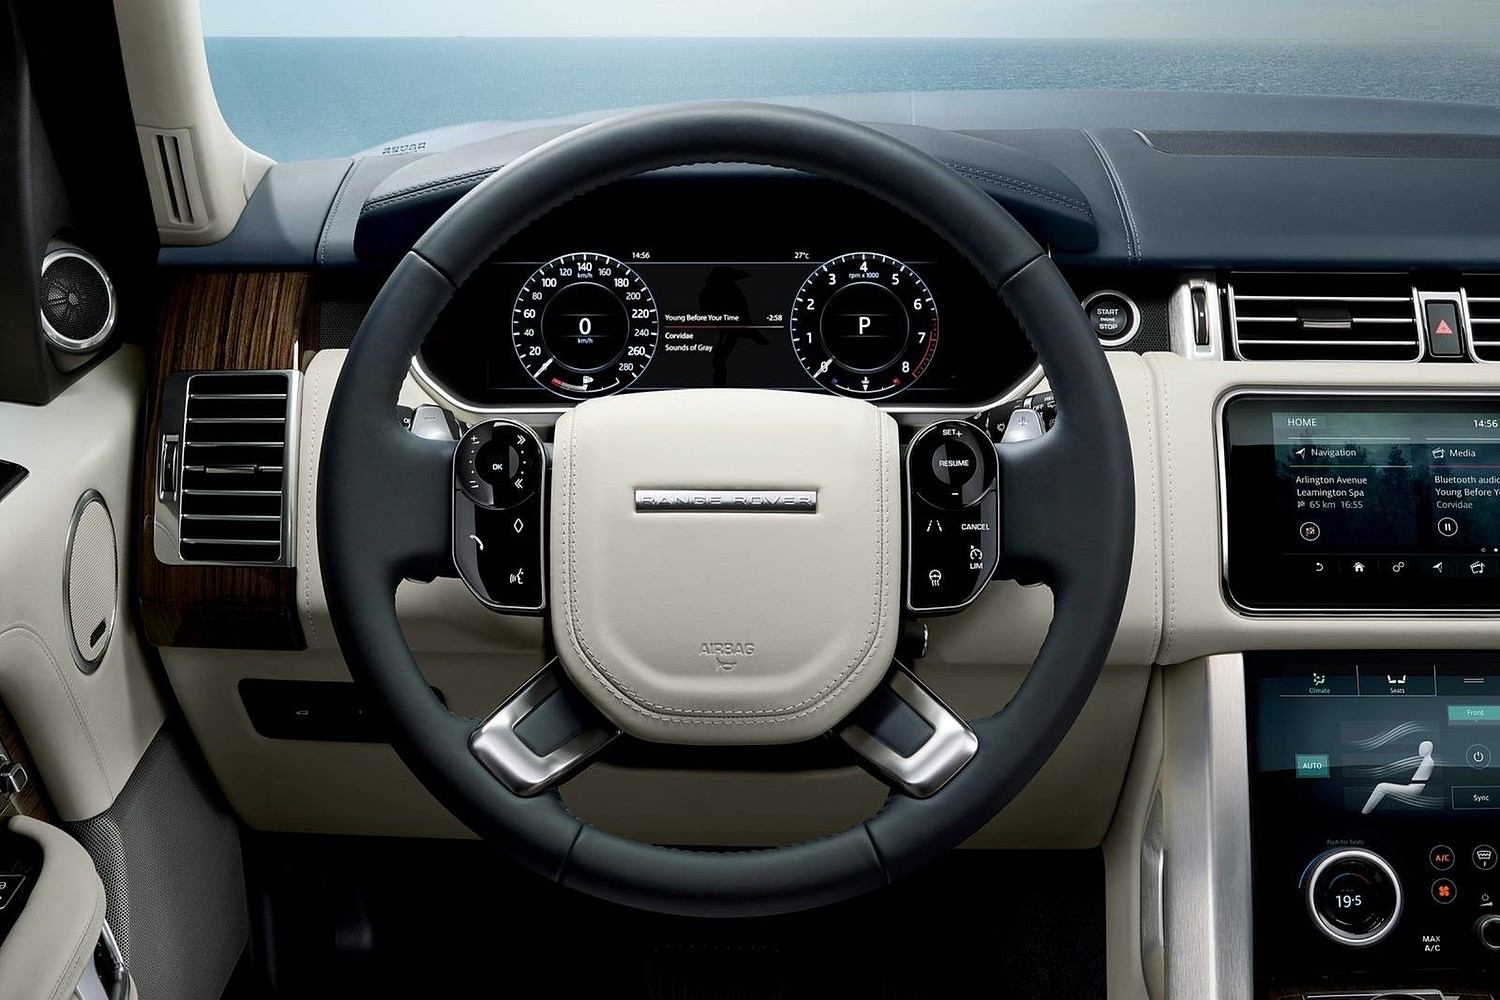 2018 Land Rover Range Rover Autobiography 4dr SUV Steering Wheel Detail